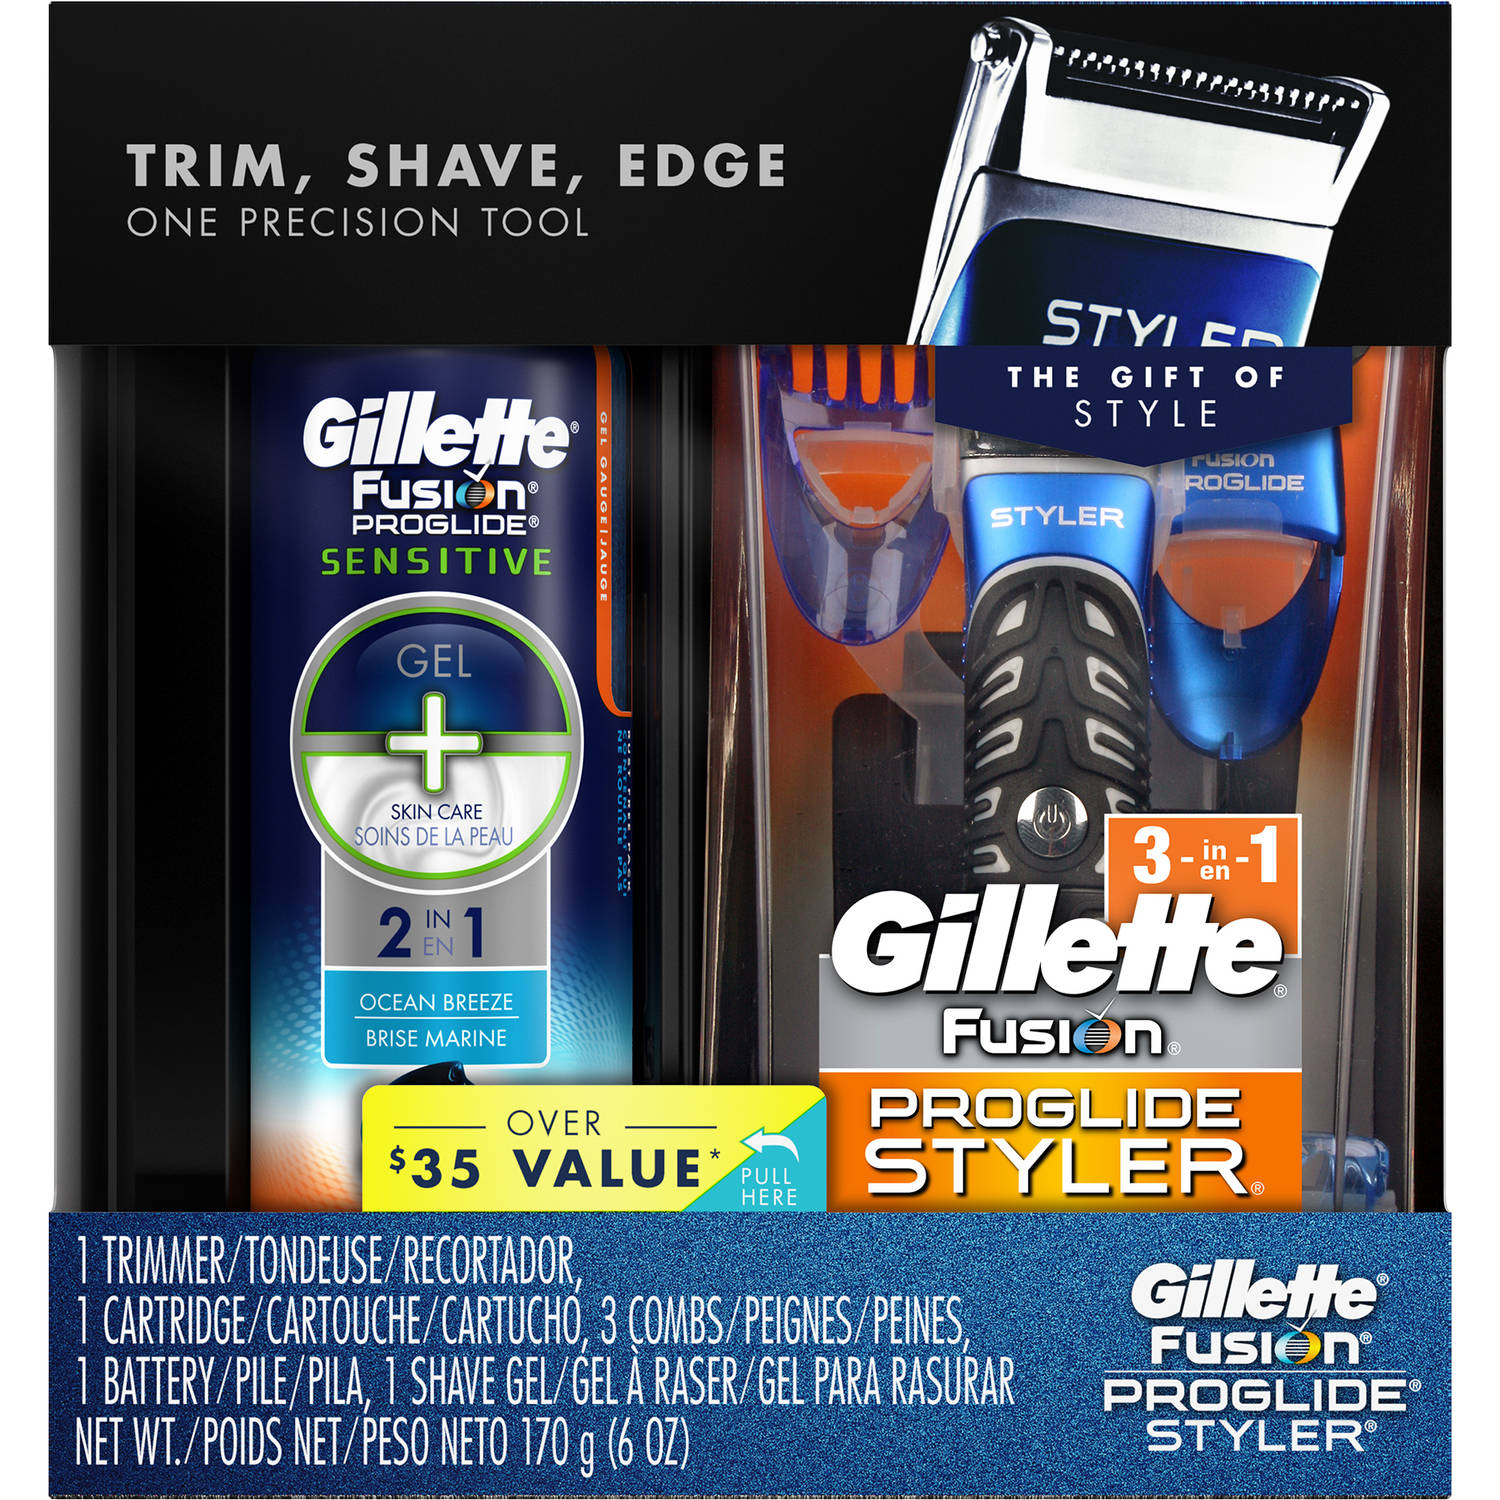 Proglide Styler Holiday 2015 Pack